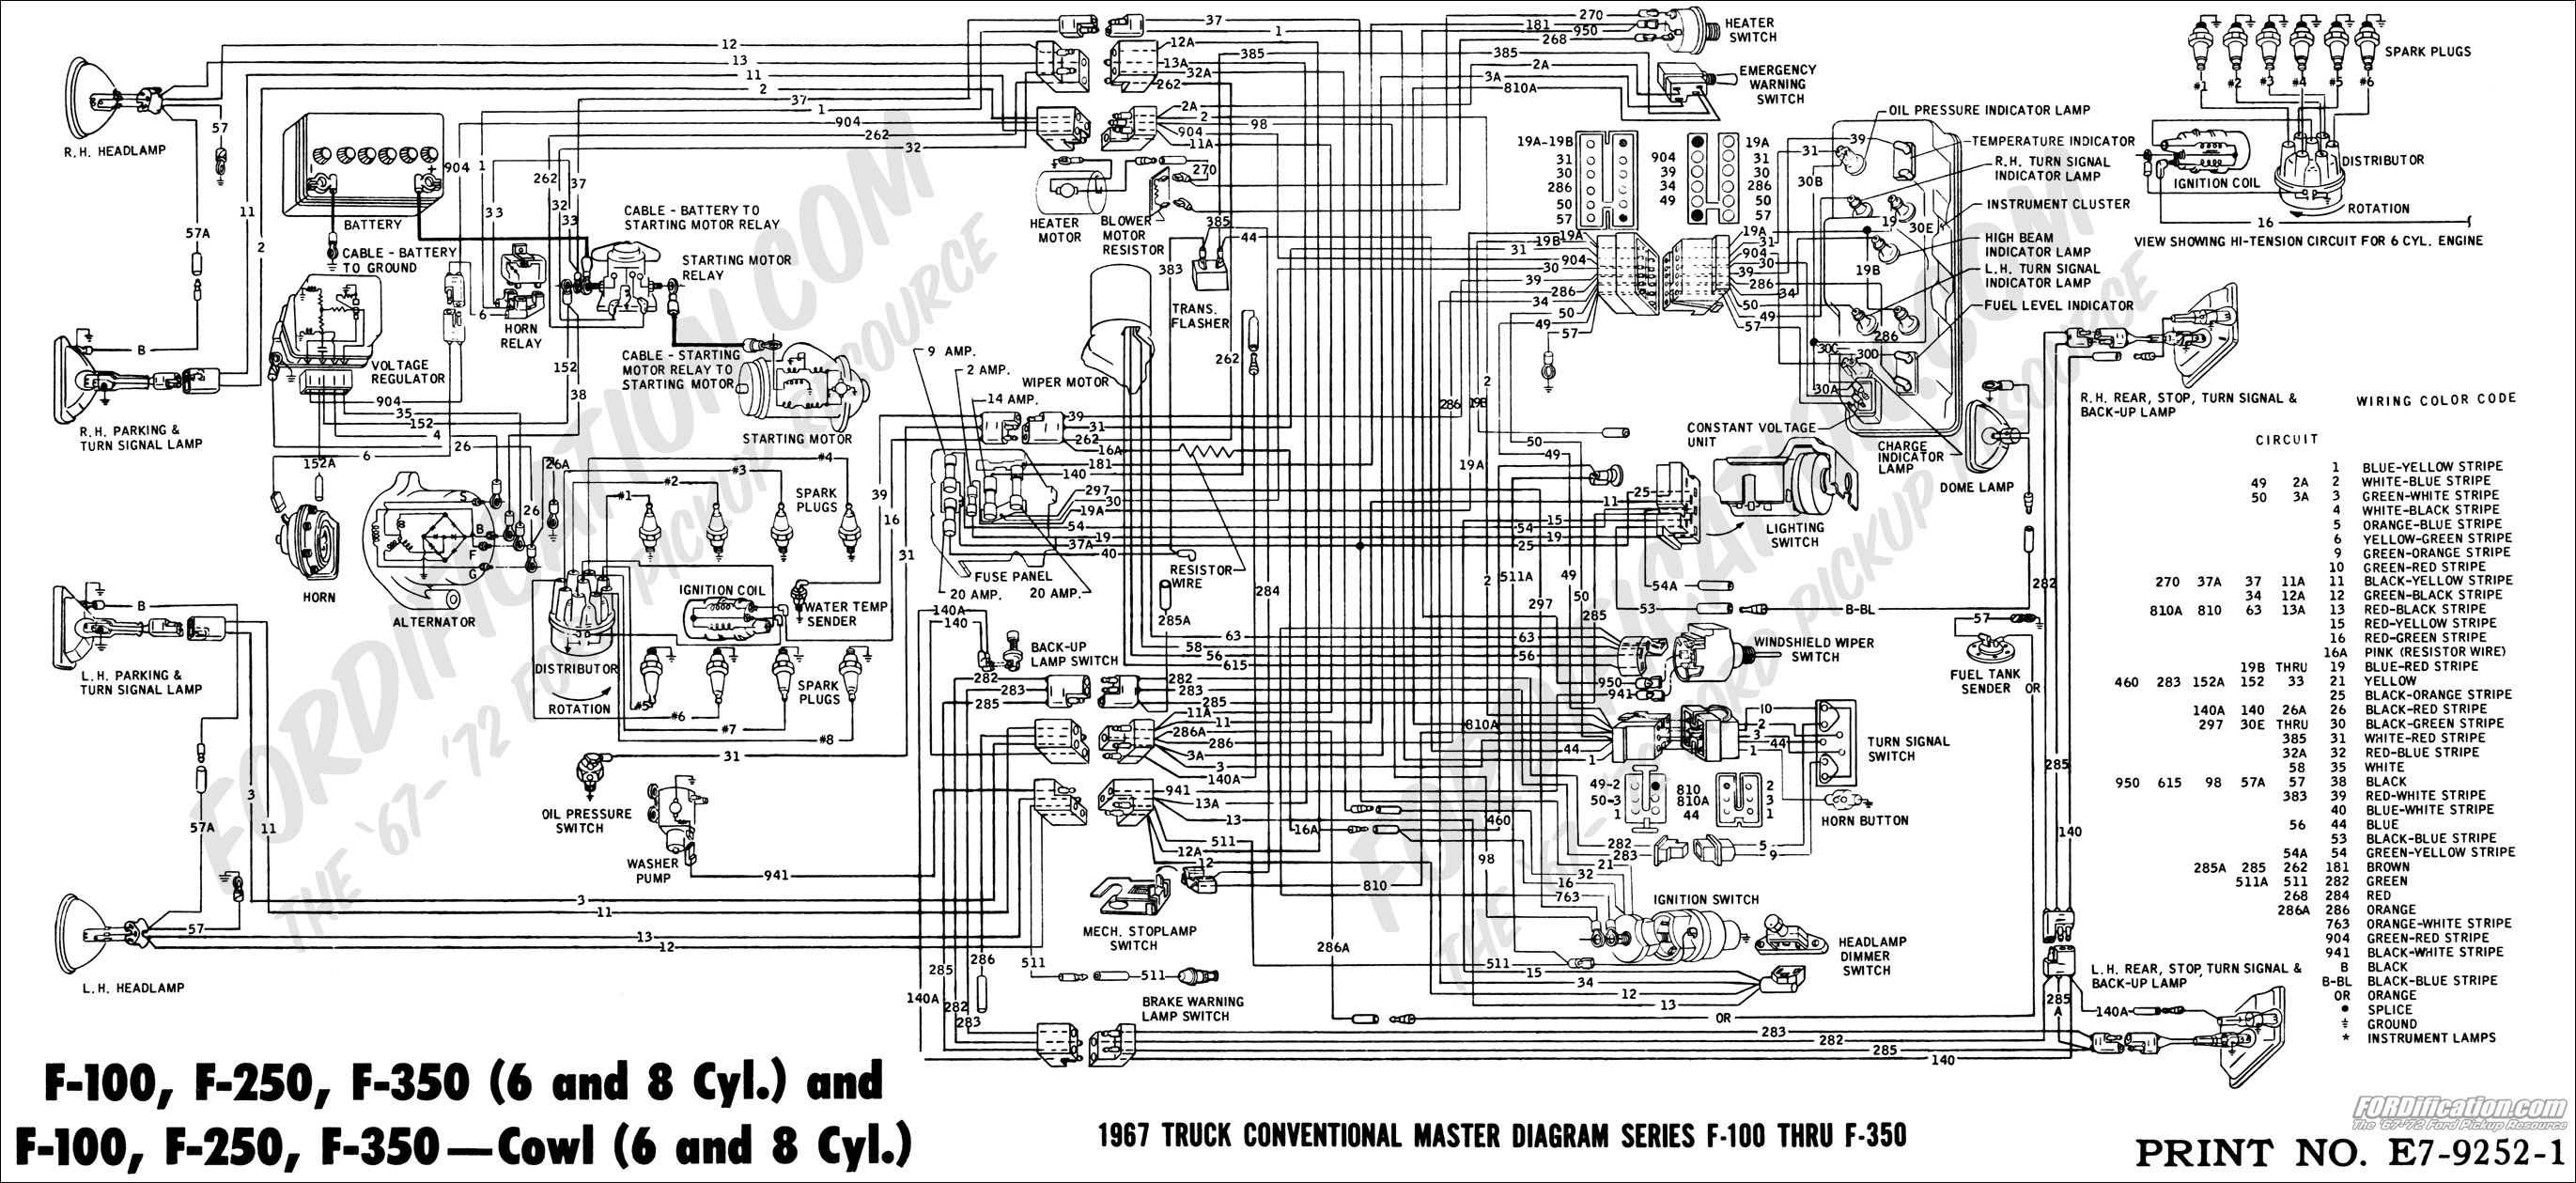 wiring diagram 1982 f 250 302 10 11 myquestraworld de \u2022 1982 Ford F150 Wiring Diagram 2003 ford ranger electrical diagram wiring diagram rh 98 zeevissendewatergeus nl 1978 ford f 250 wiring diagram 1978 ford f 250 wiring diagram